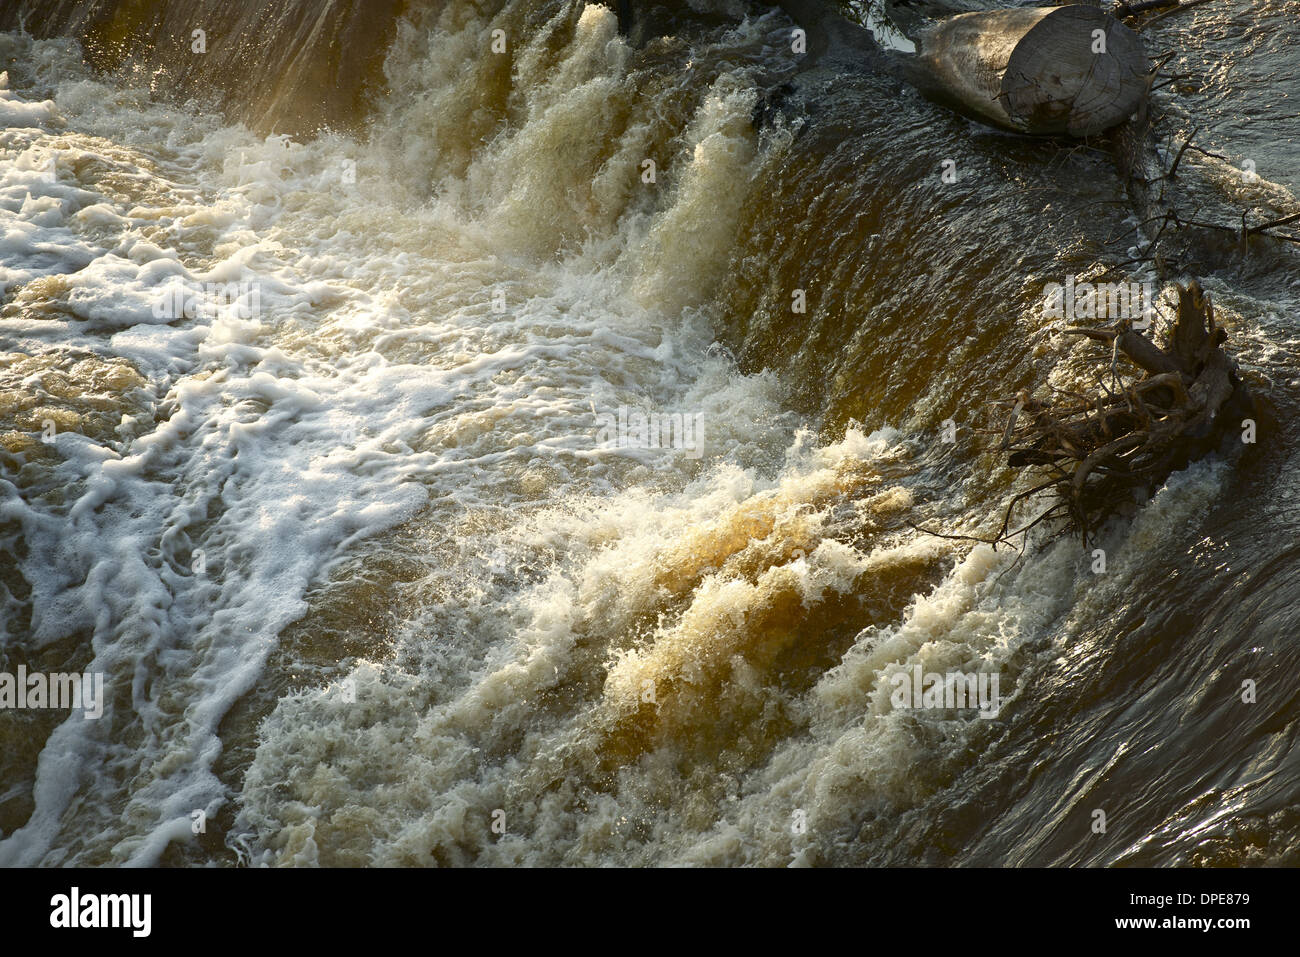 Flood Disaster - Rushing Dark Dirty Waters During Flash Flood. Nature Disasters Photo Collection. - Stock Image